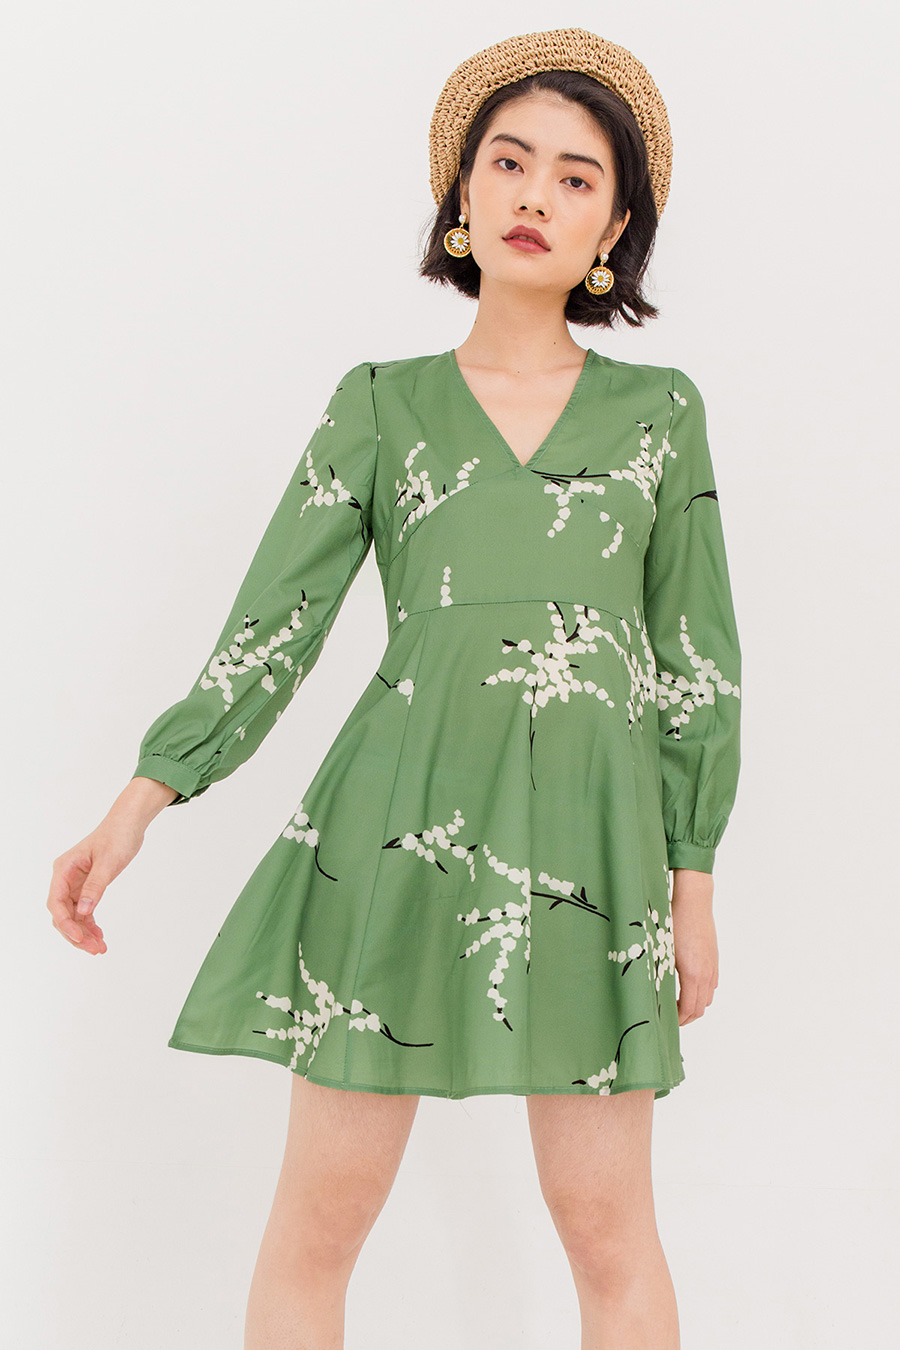 *BO* ANISE FLORAL FLARE DRESS - GREEN